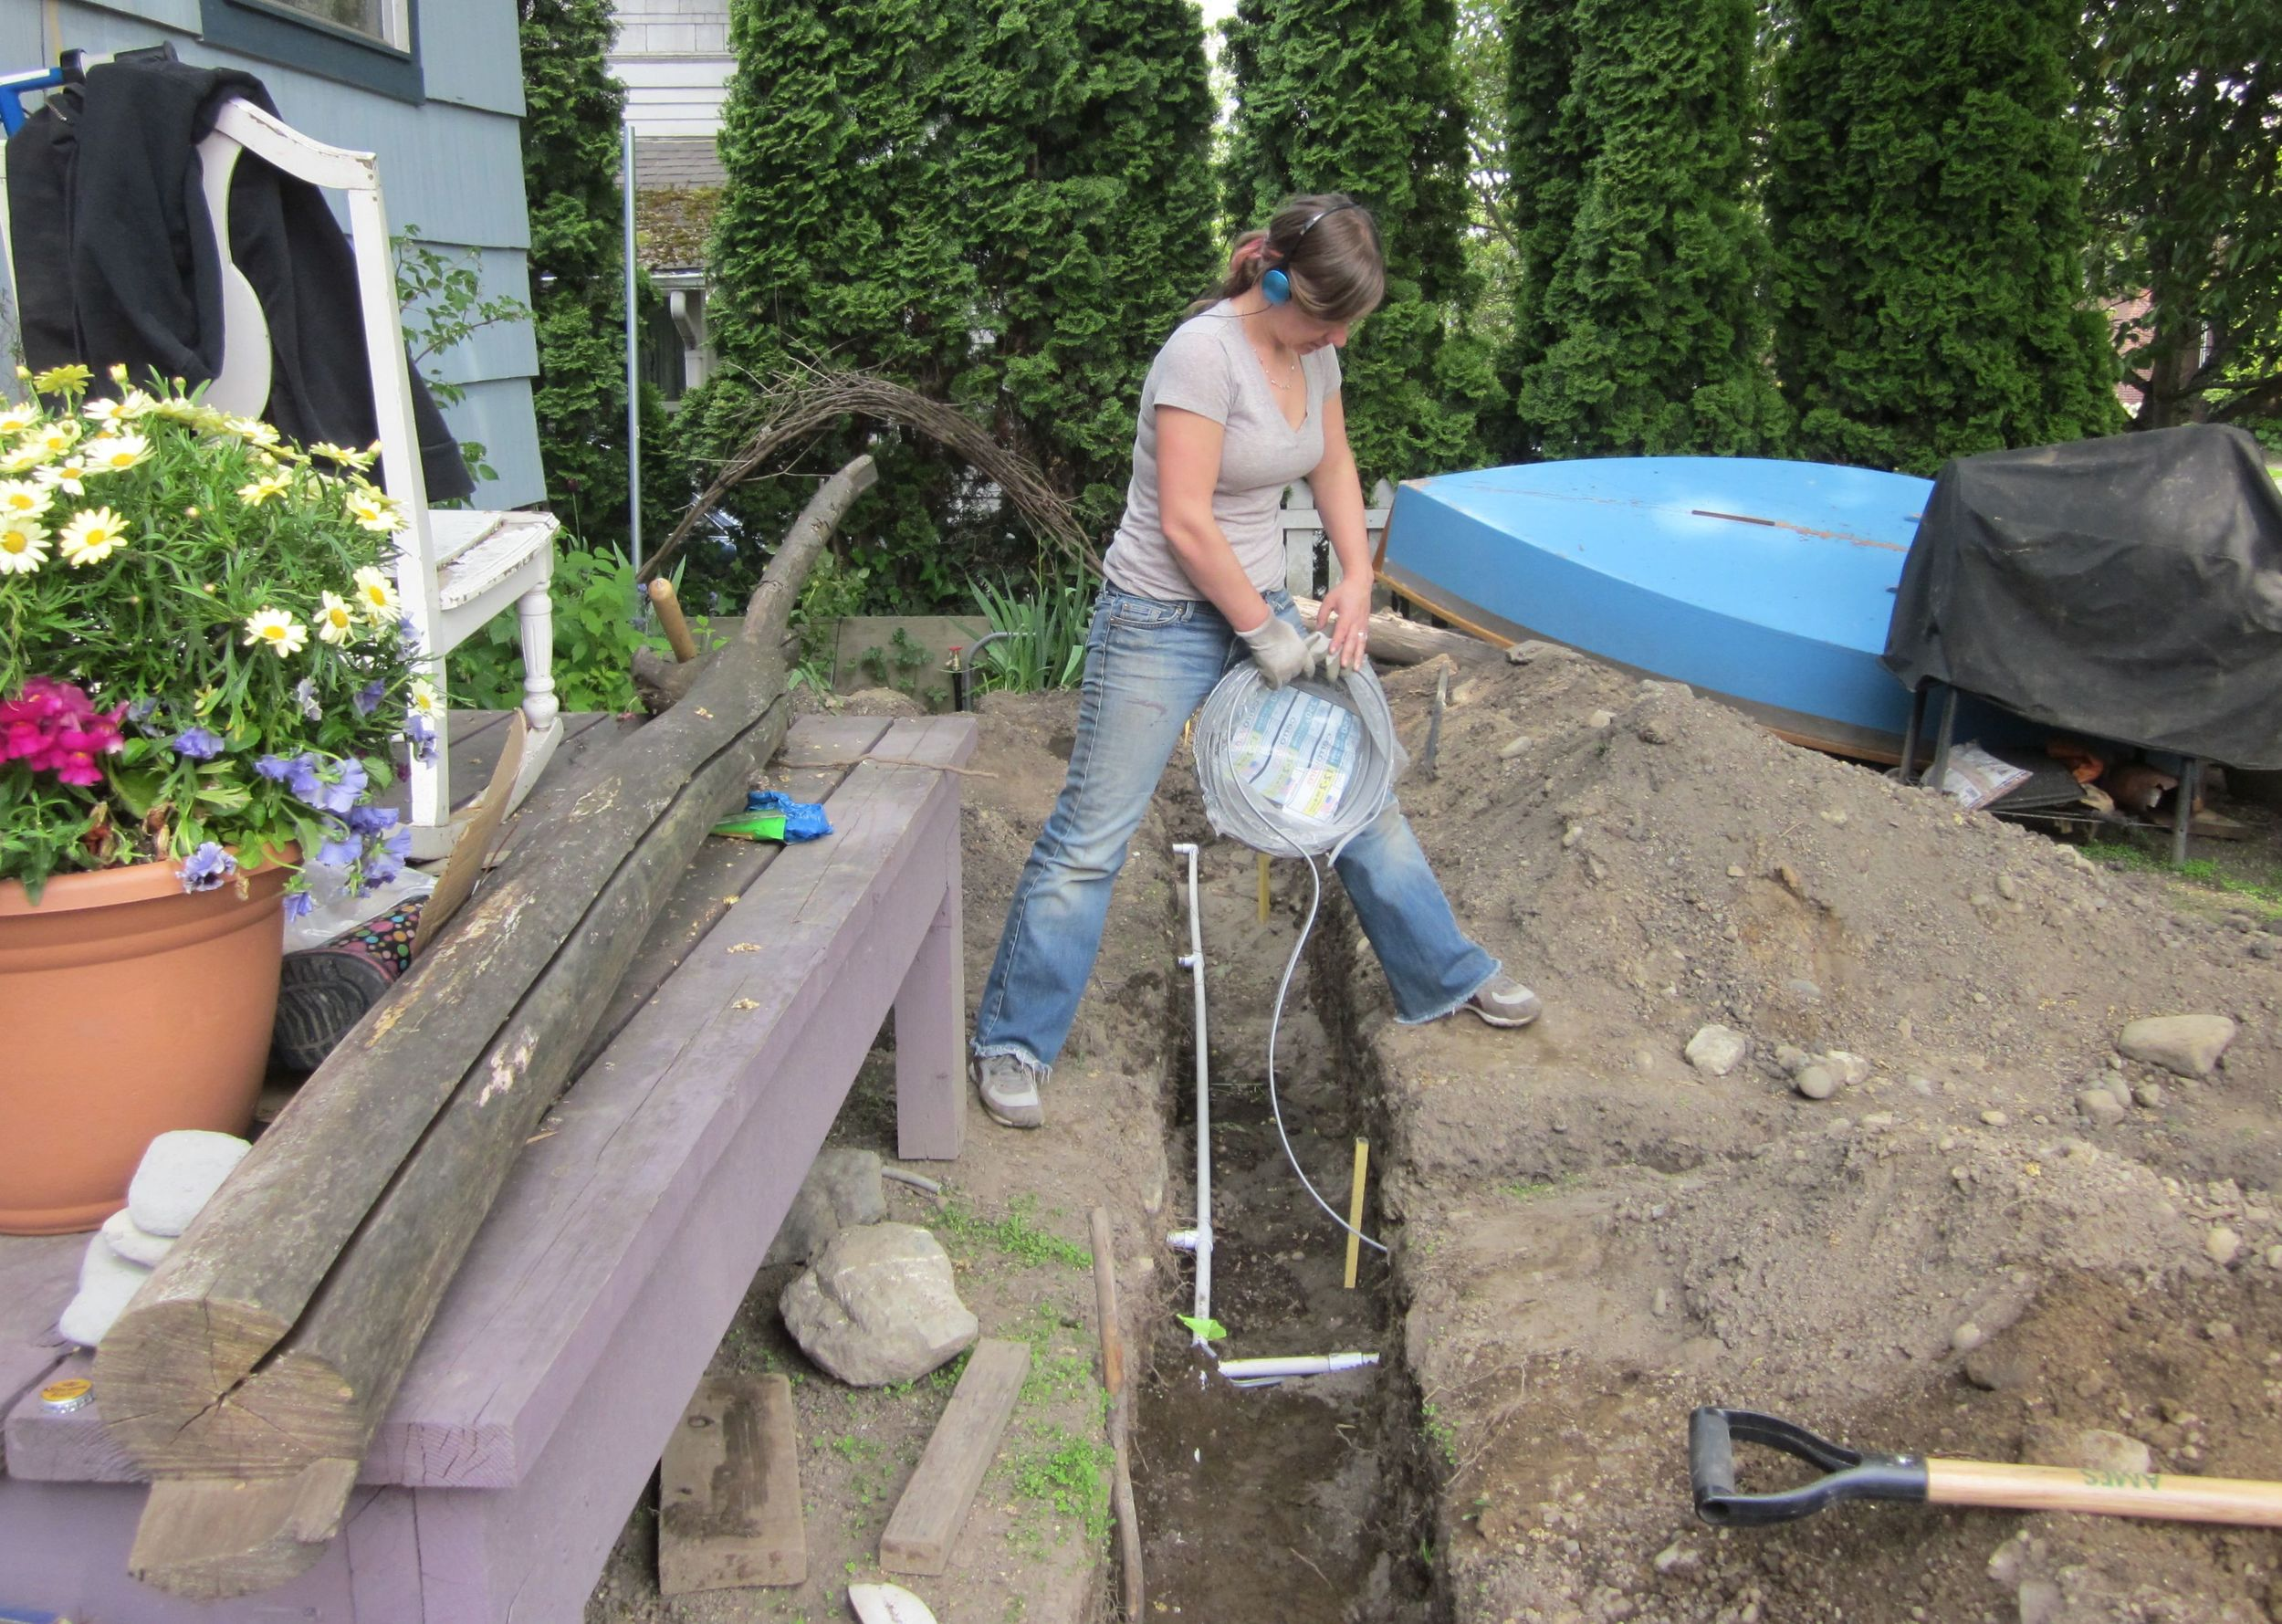 Digging trenches and doing electrical work, 2011